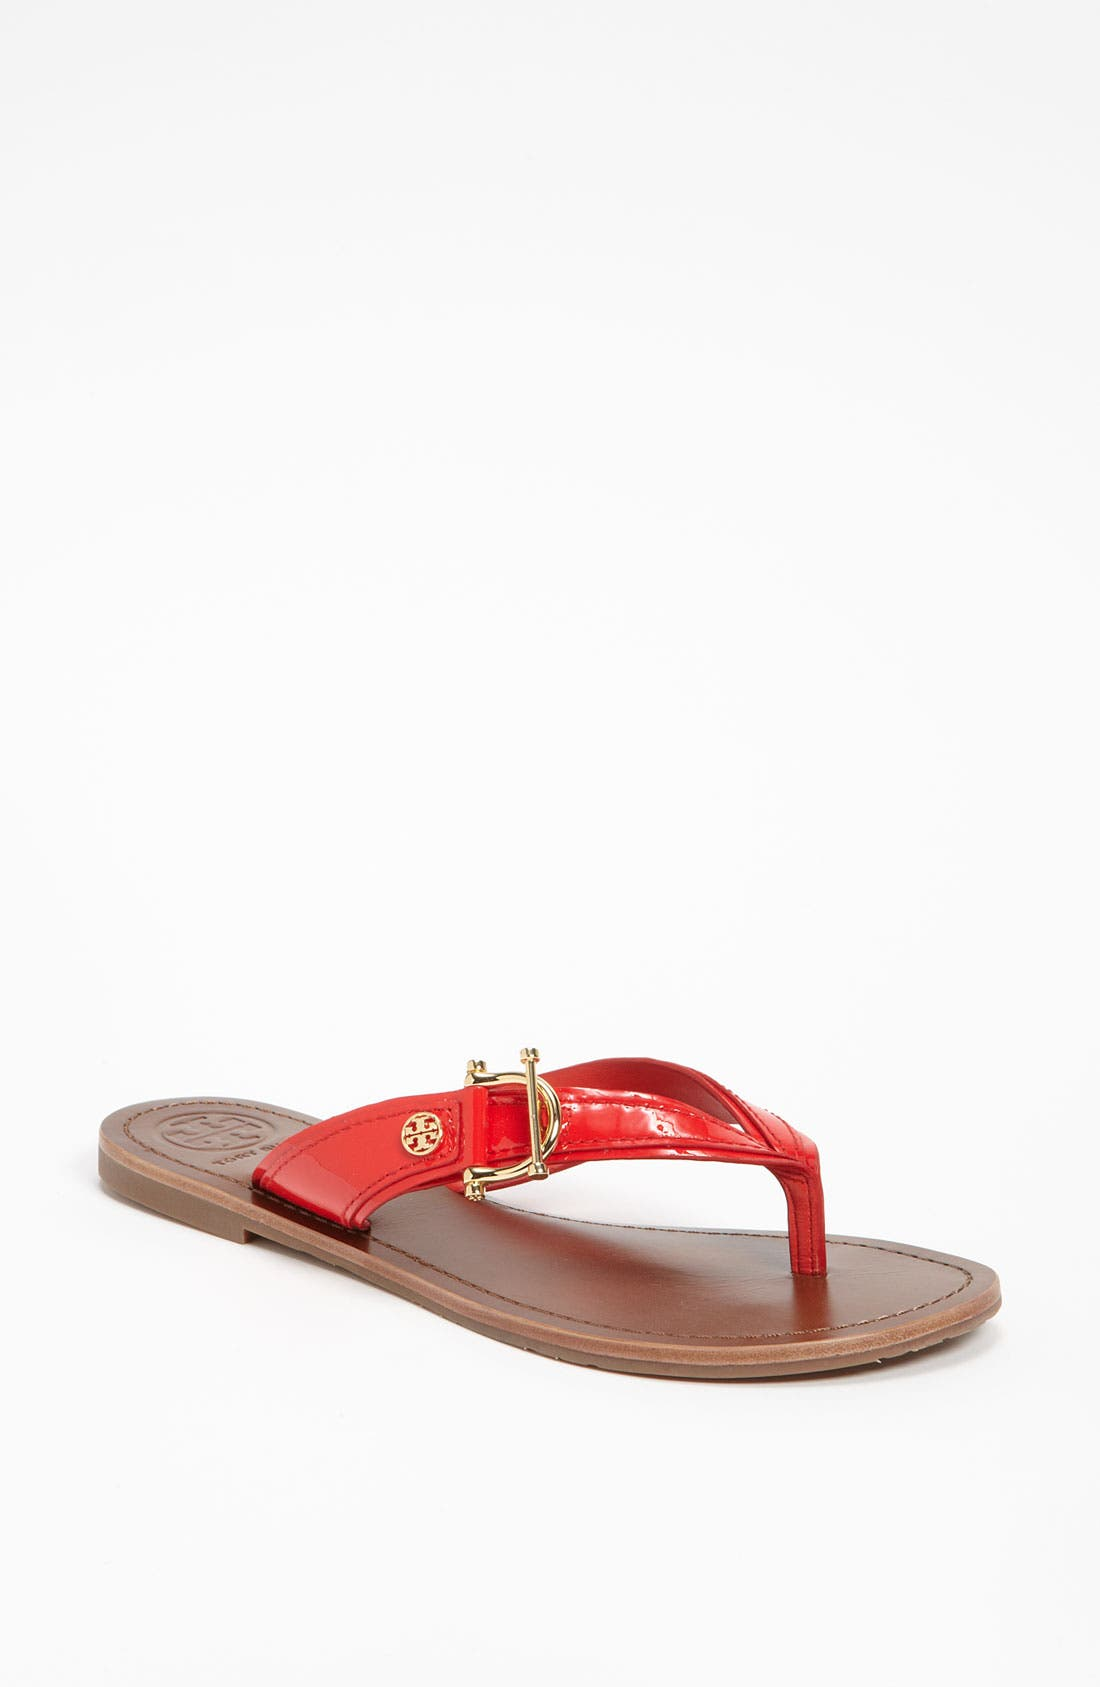 Main Image - Tory Burch 'Nora' Sandal (Nordstrom Exclusive)